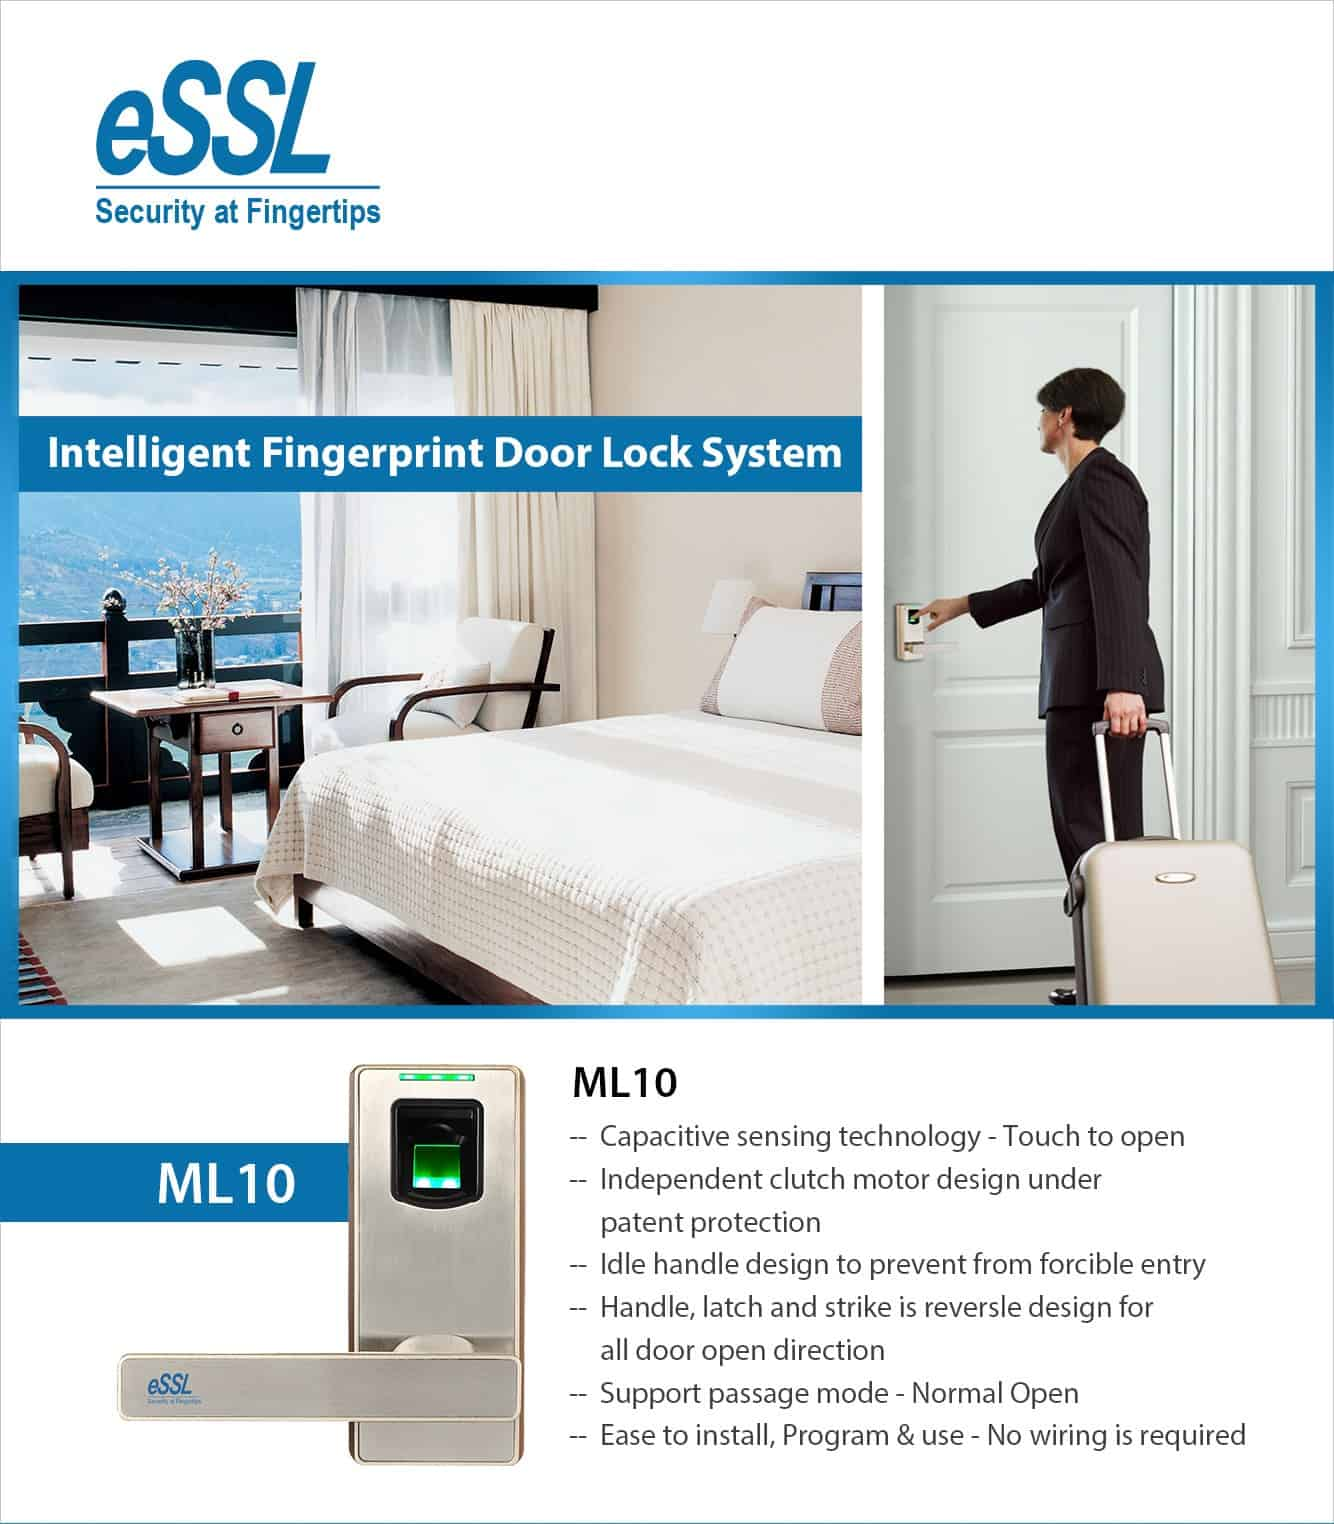 essl fingerprint door lock ML10